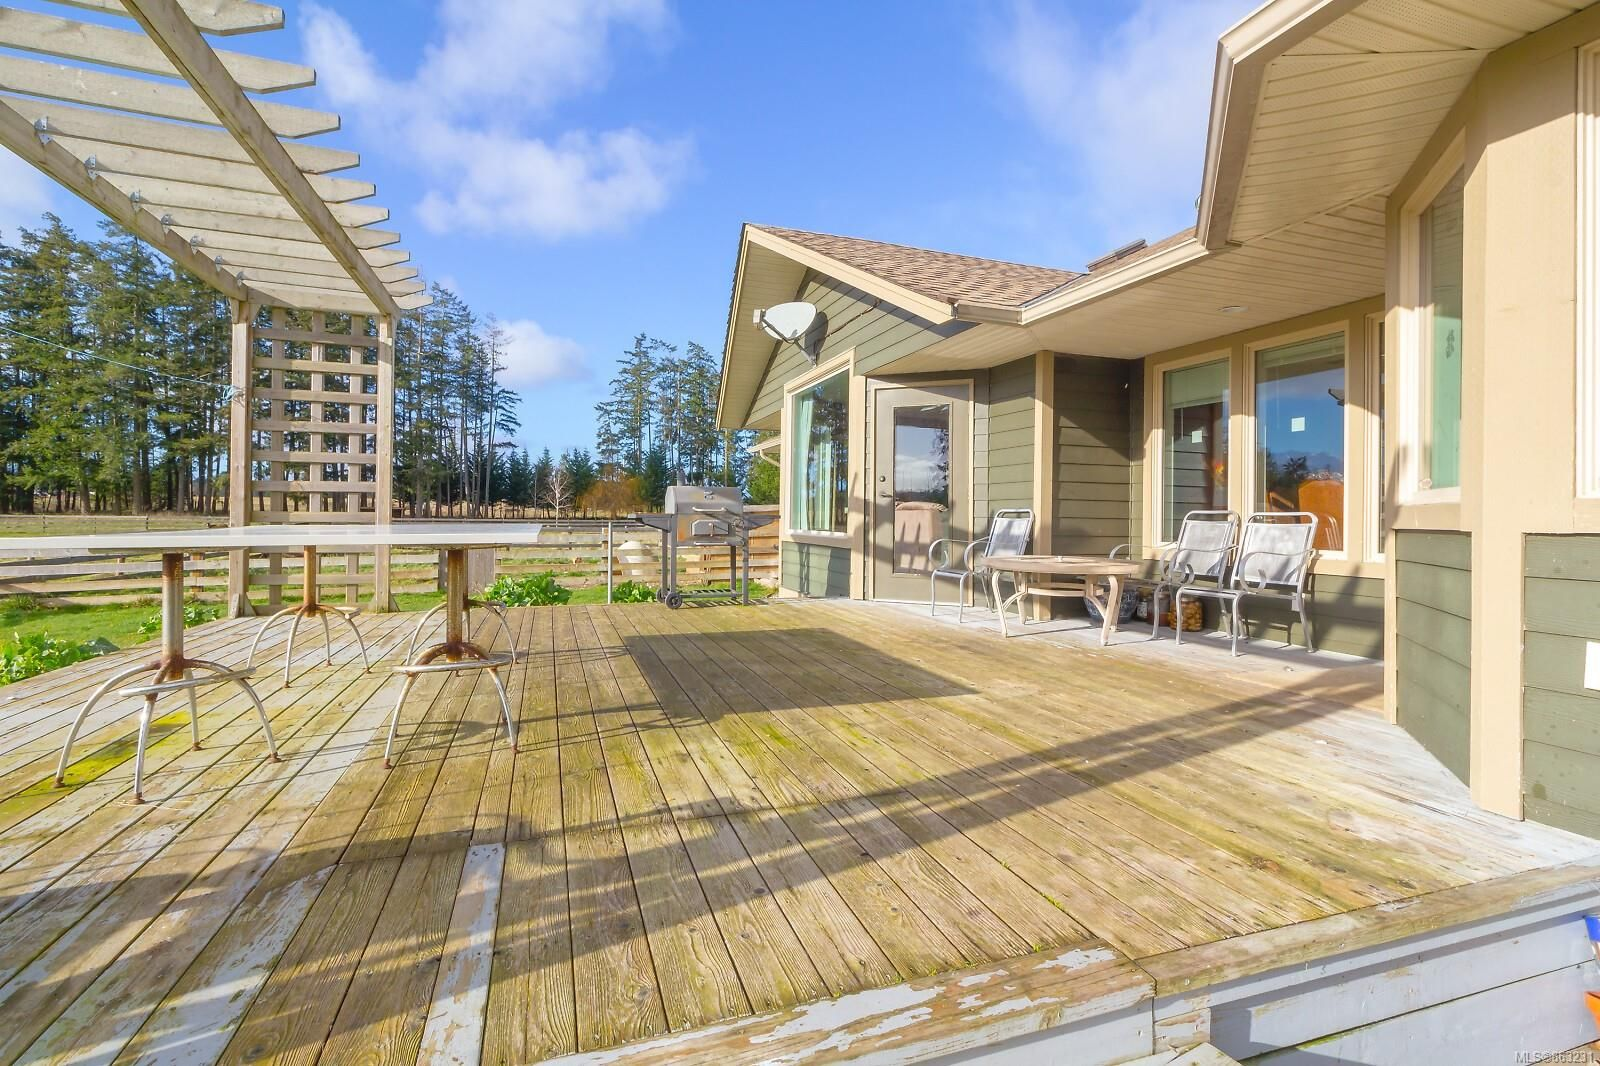 Photo 19: Photos: 1230 Hodges Rd in : PQ French Creek House for sale (Parksville/Qualicum)  : MLS®# 863231